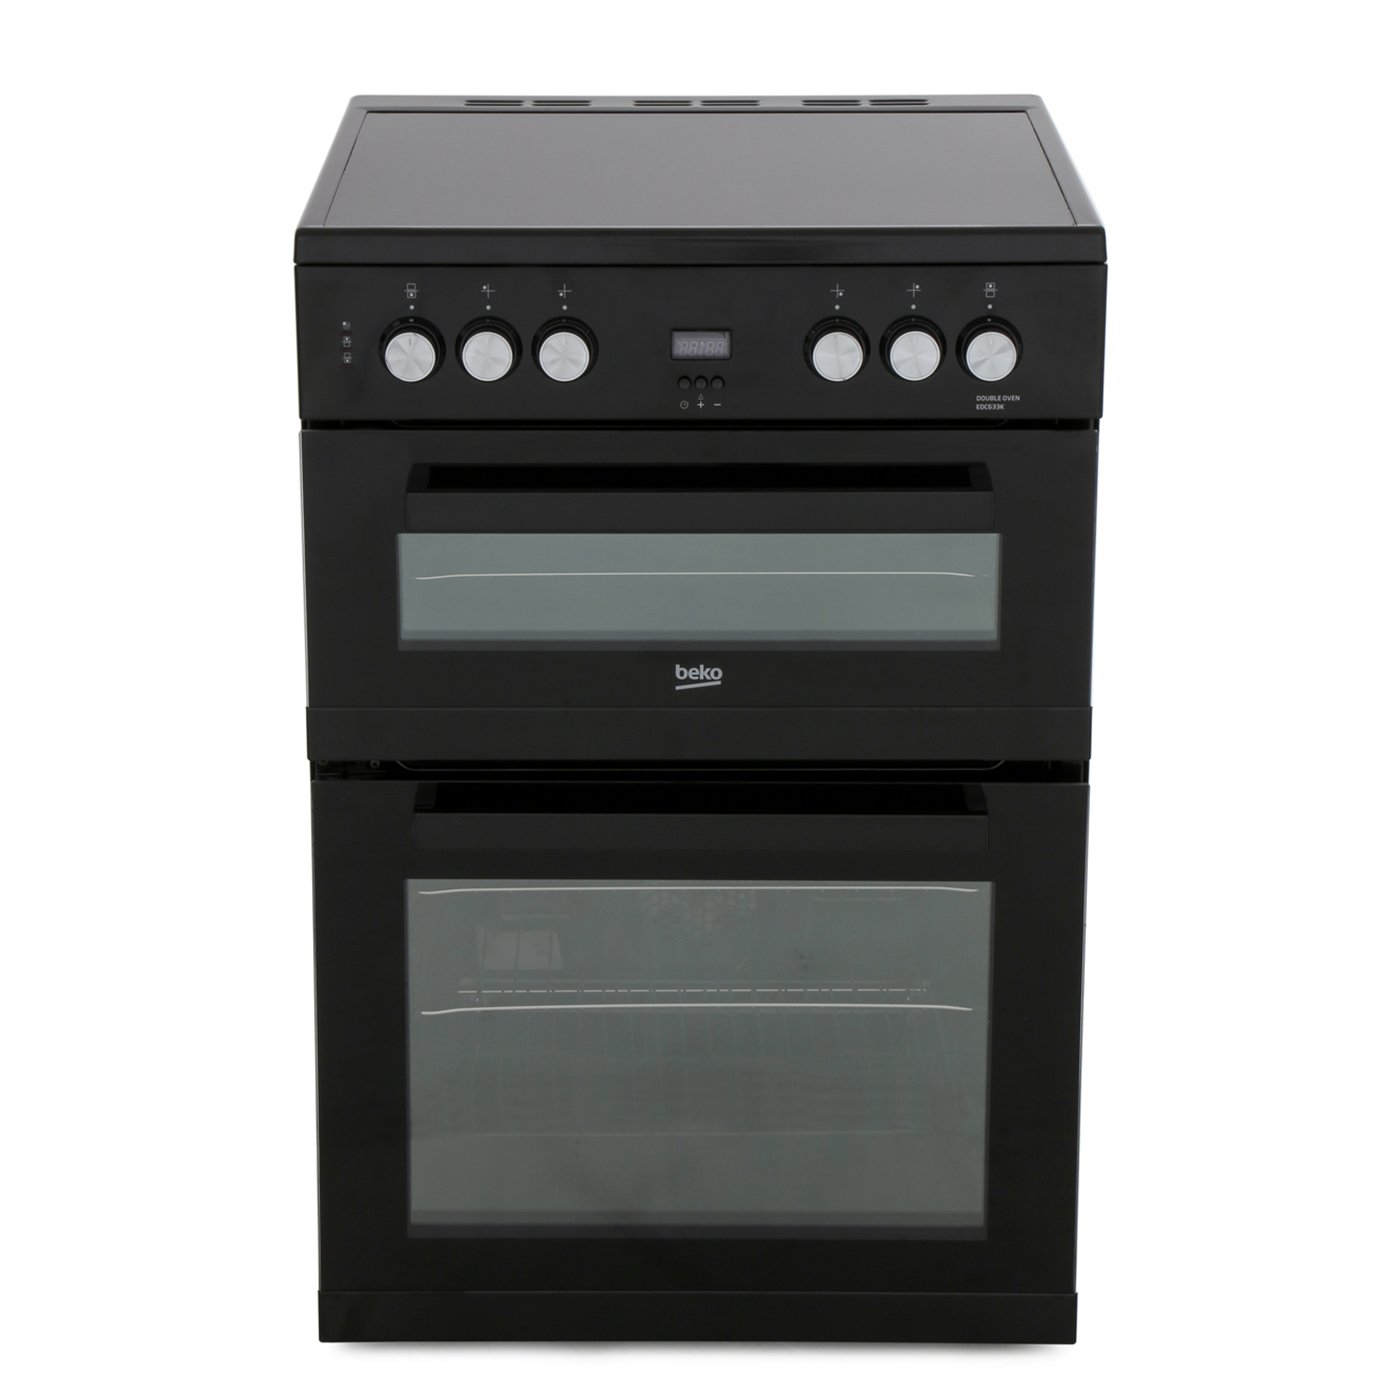 Beko EDC633K Ceramic Electric Cooker with Double Oven